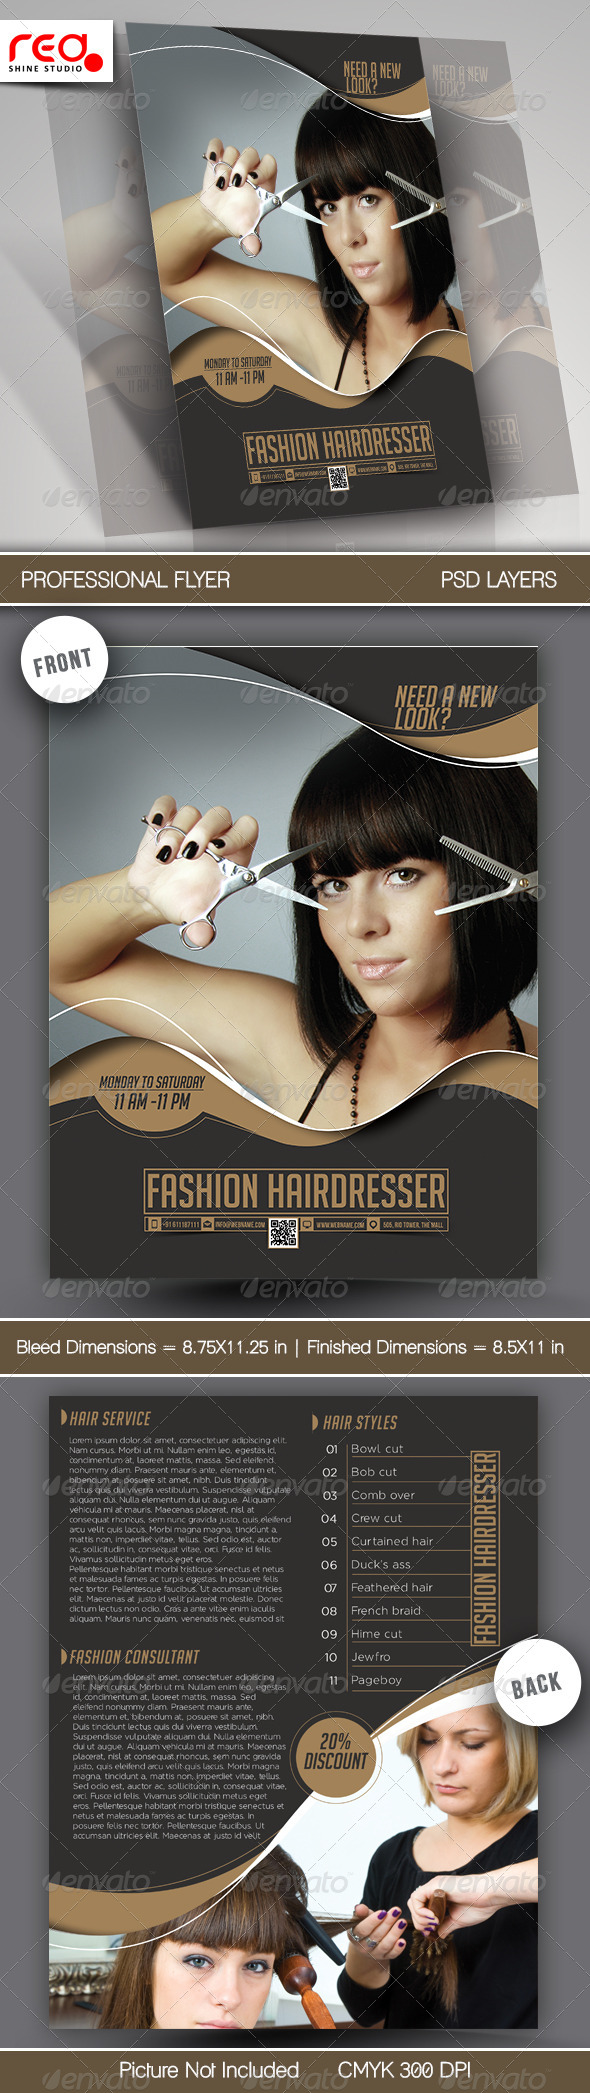 Fashion Hairdresser Flyer & Poster Template - Commerce Flyers